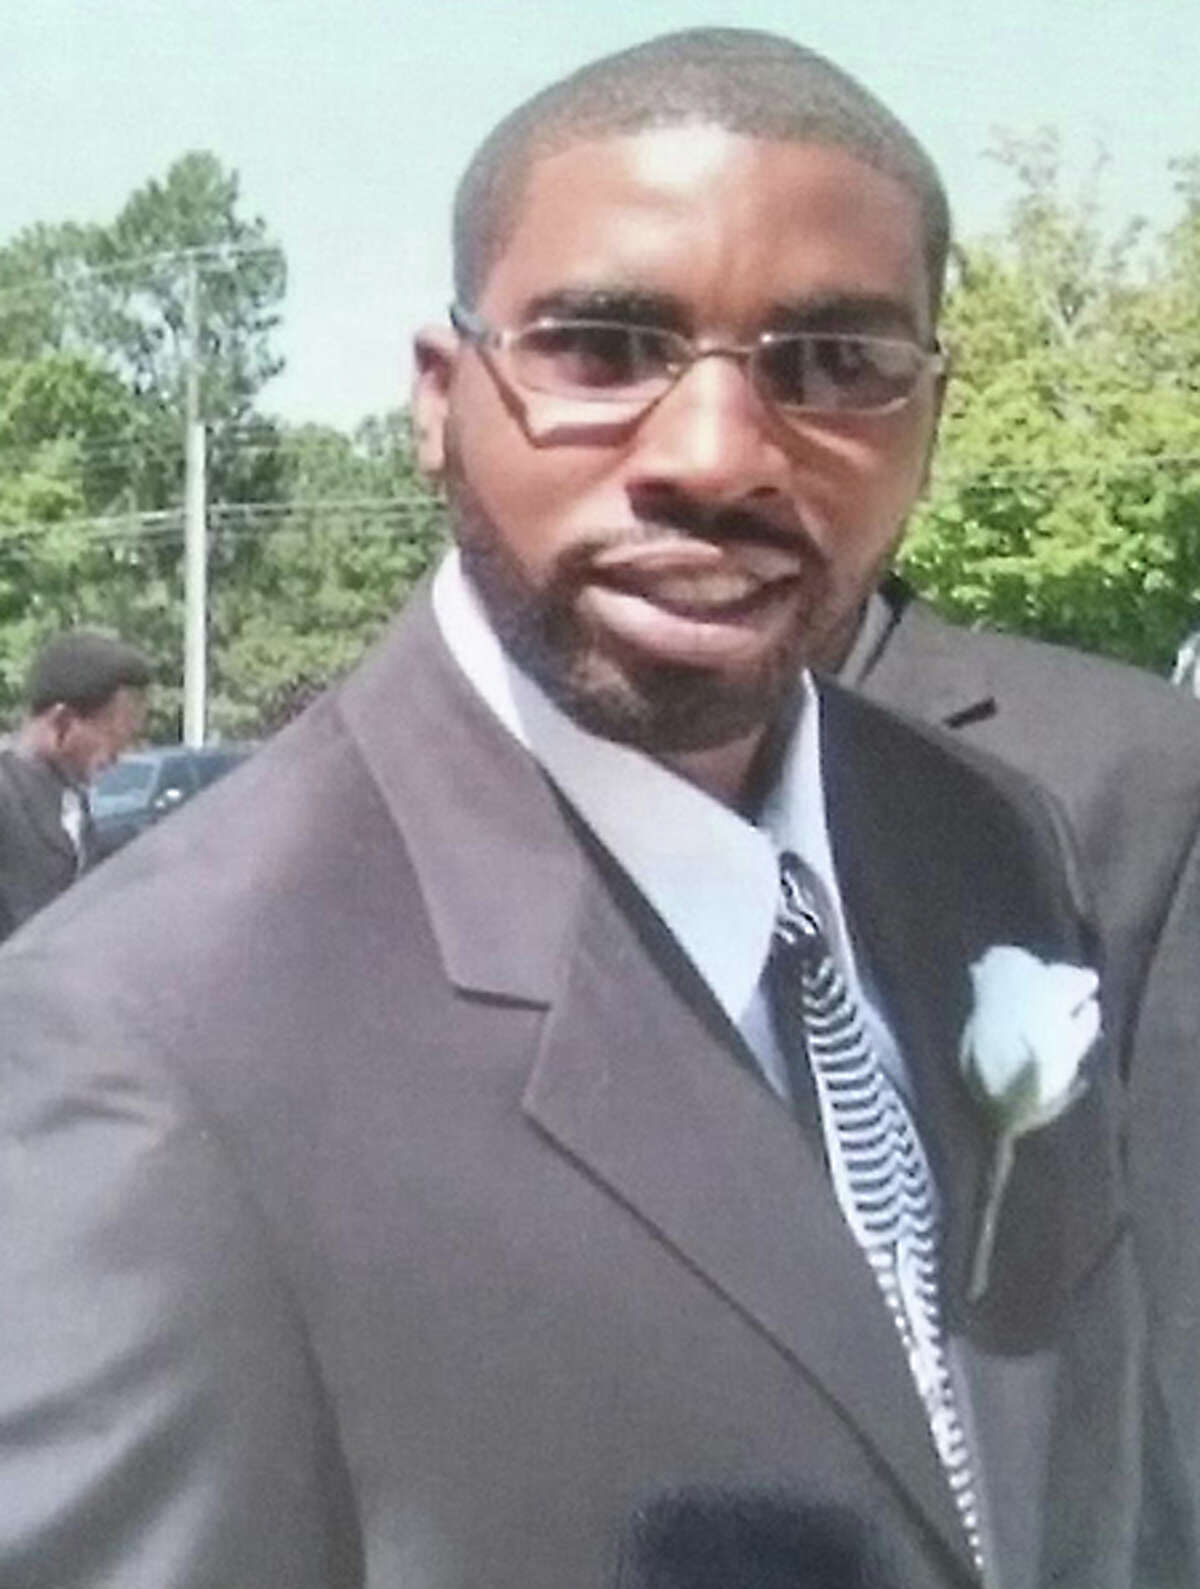 Terrence Sterling, 31, of Fort Washington, Md.,was fatally shot by a District police officer after he crashed the motorcycle he was riding into police cruiser during a traffic stop on Sept. 11, 2016.